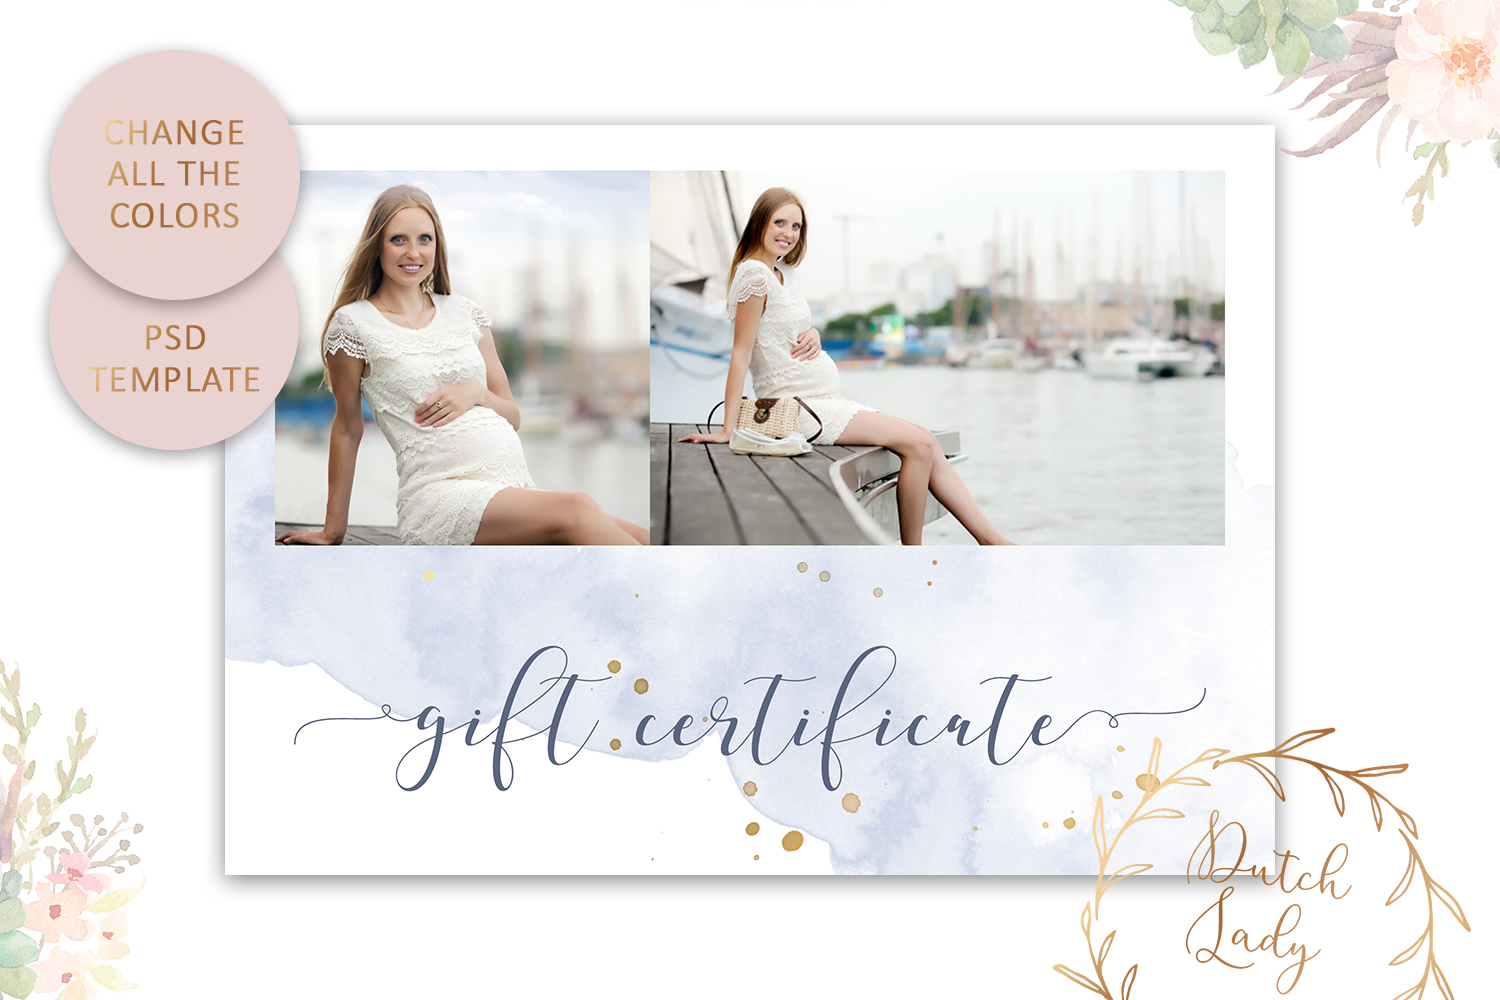 Photo Gift Card Template for Adobe Photoshop - #43 example image 4